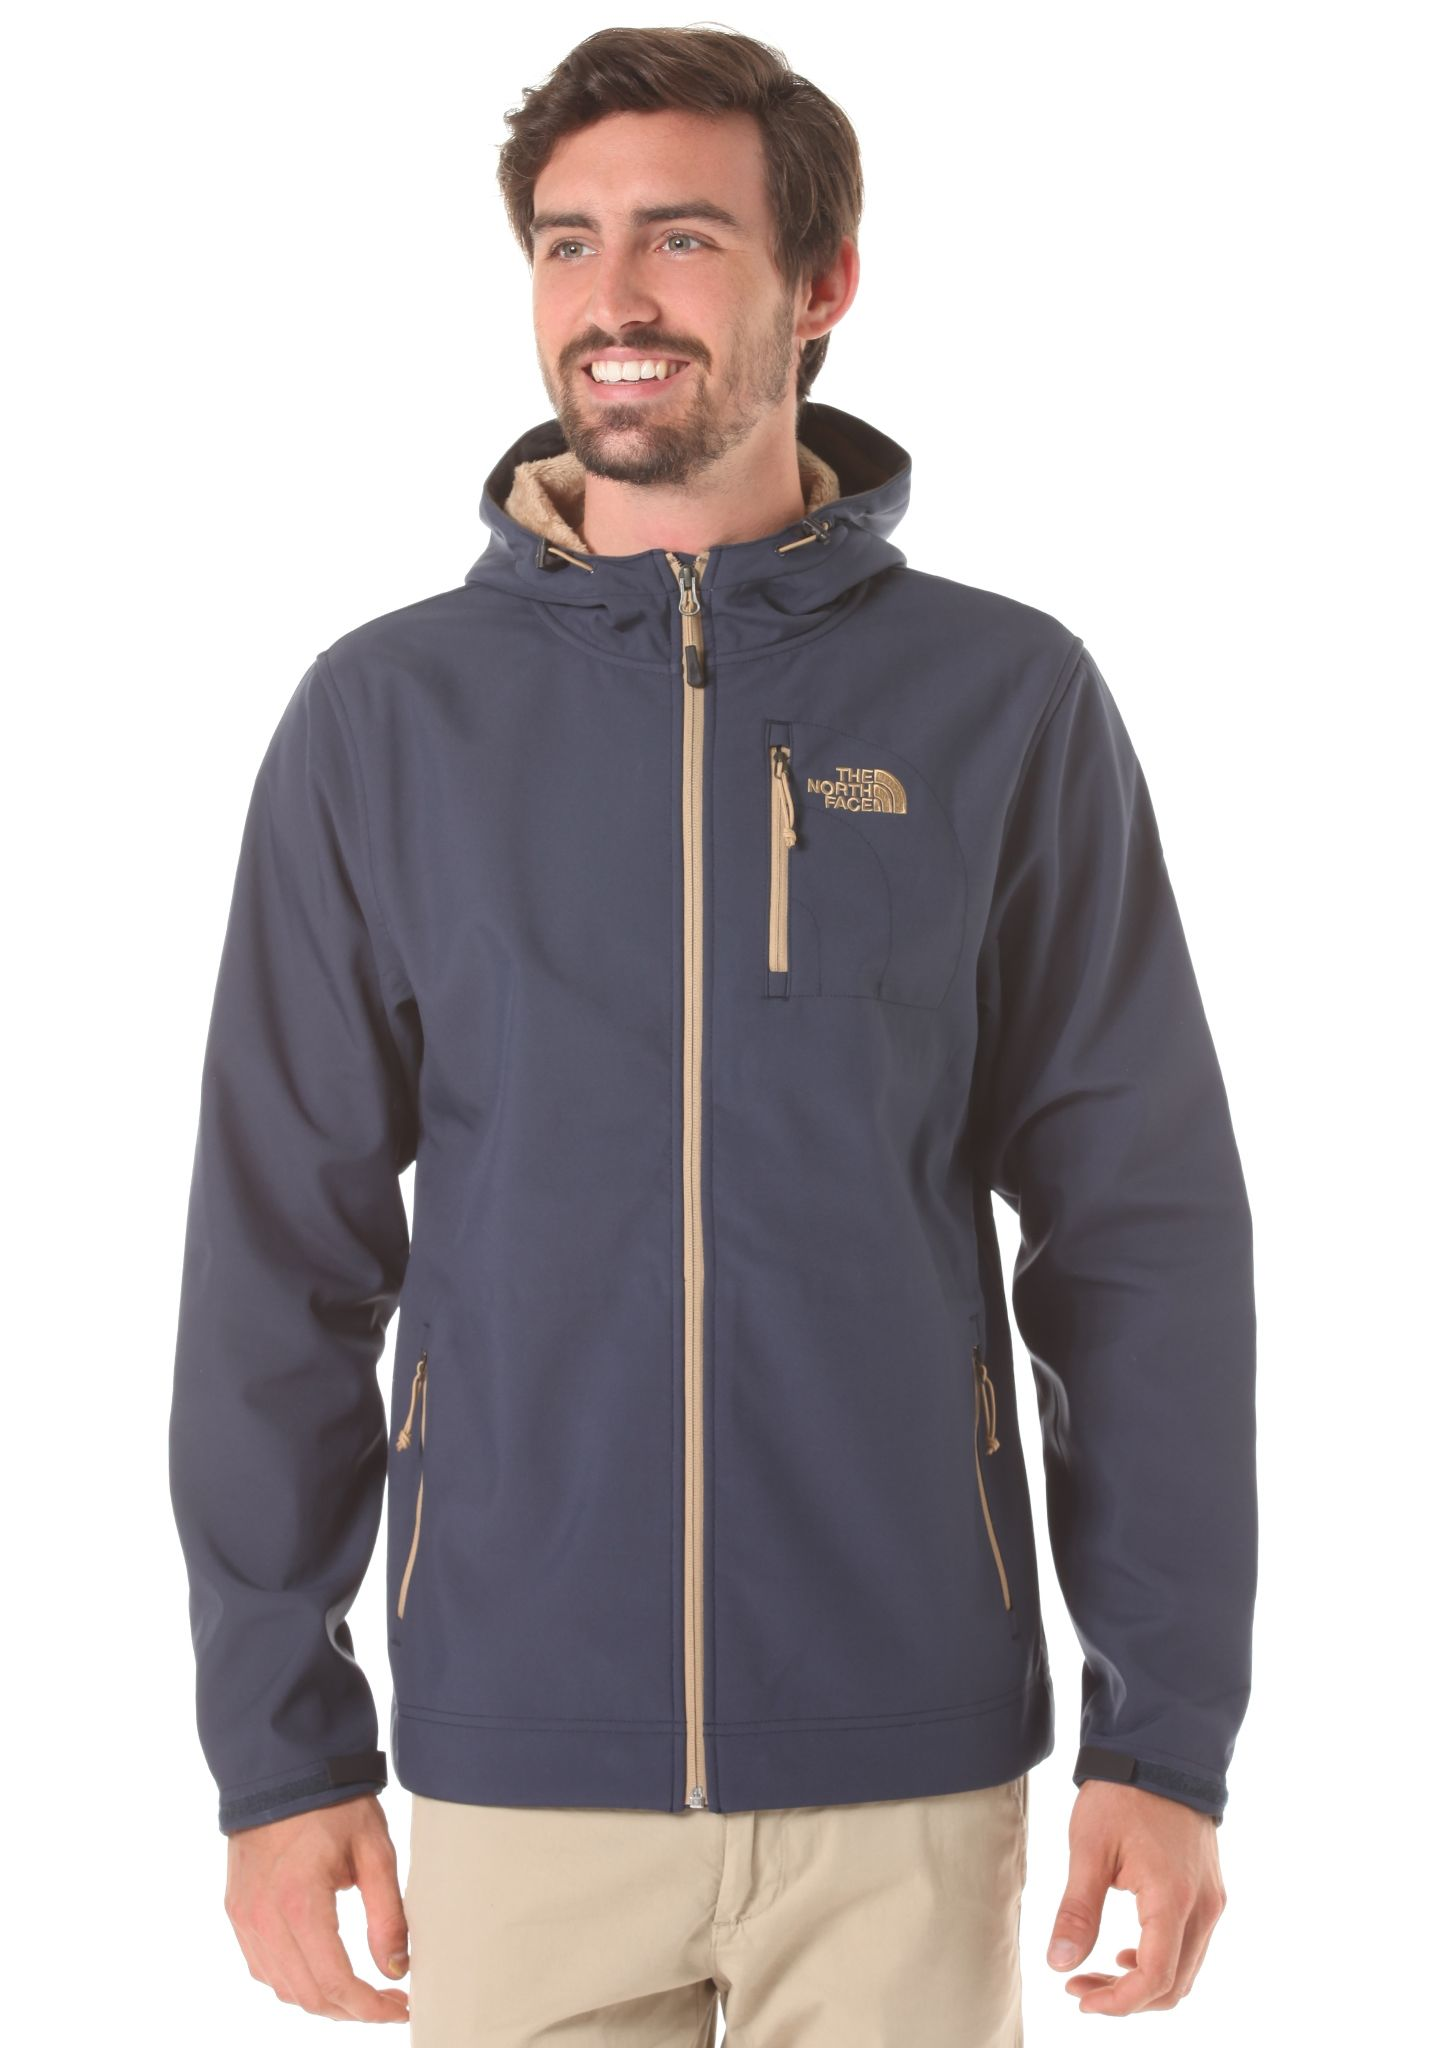 THE NORTH FACE Durango - Giacca per Uomo - Blu - Planet Sports 83c6113d491d